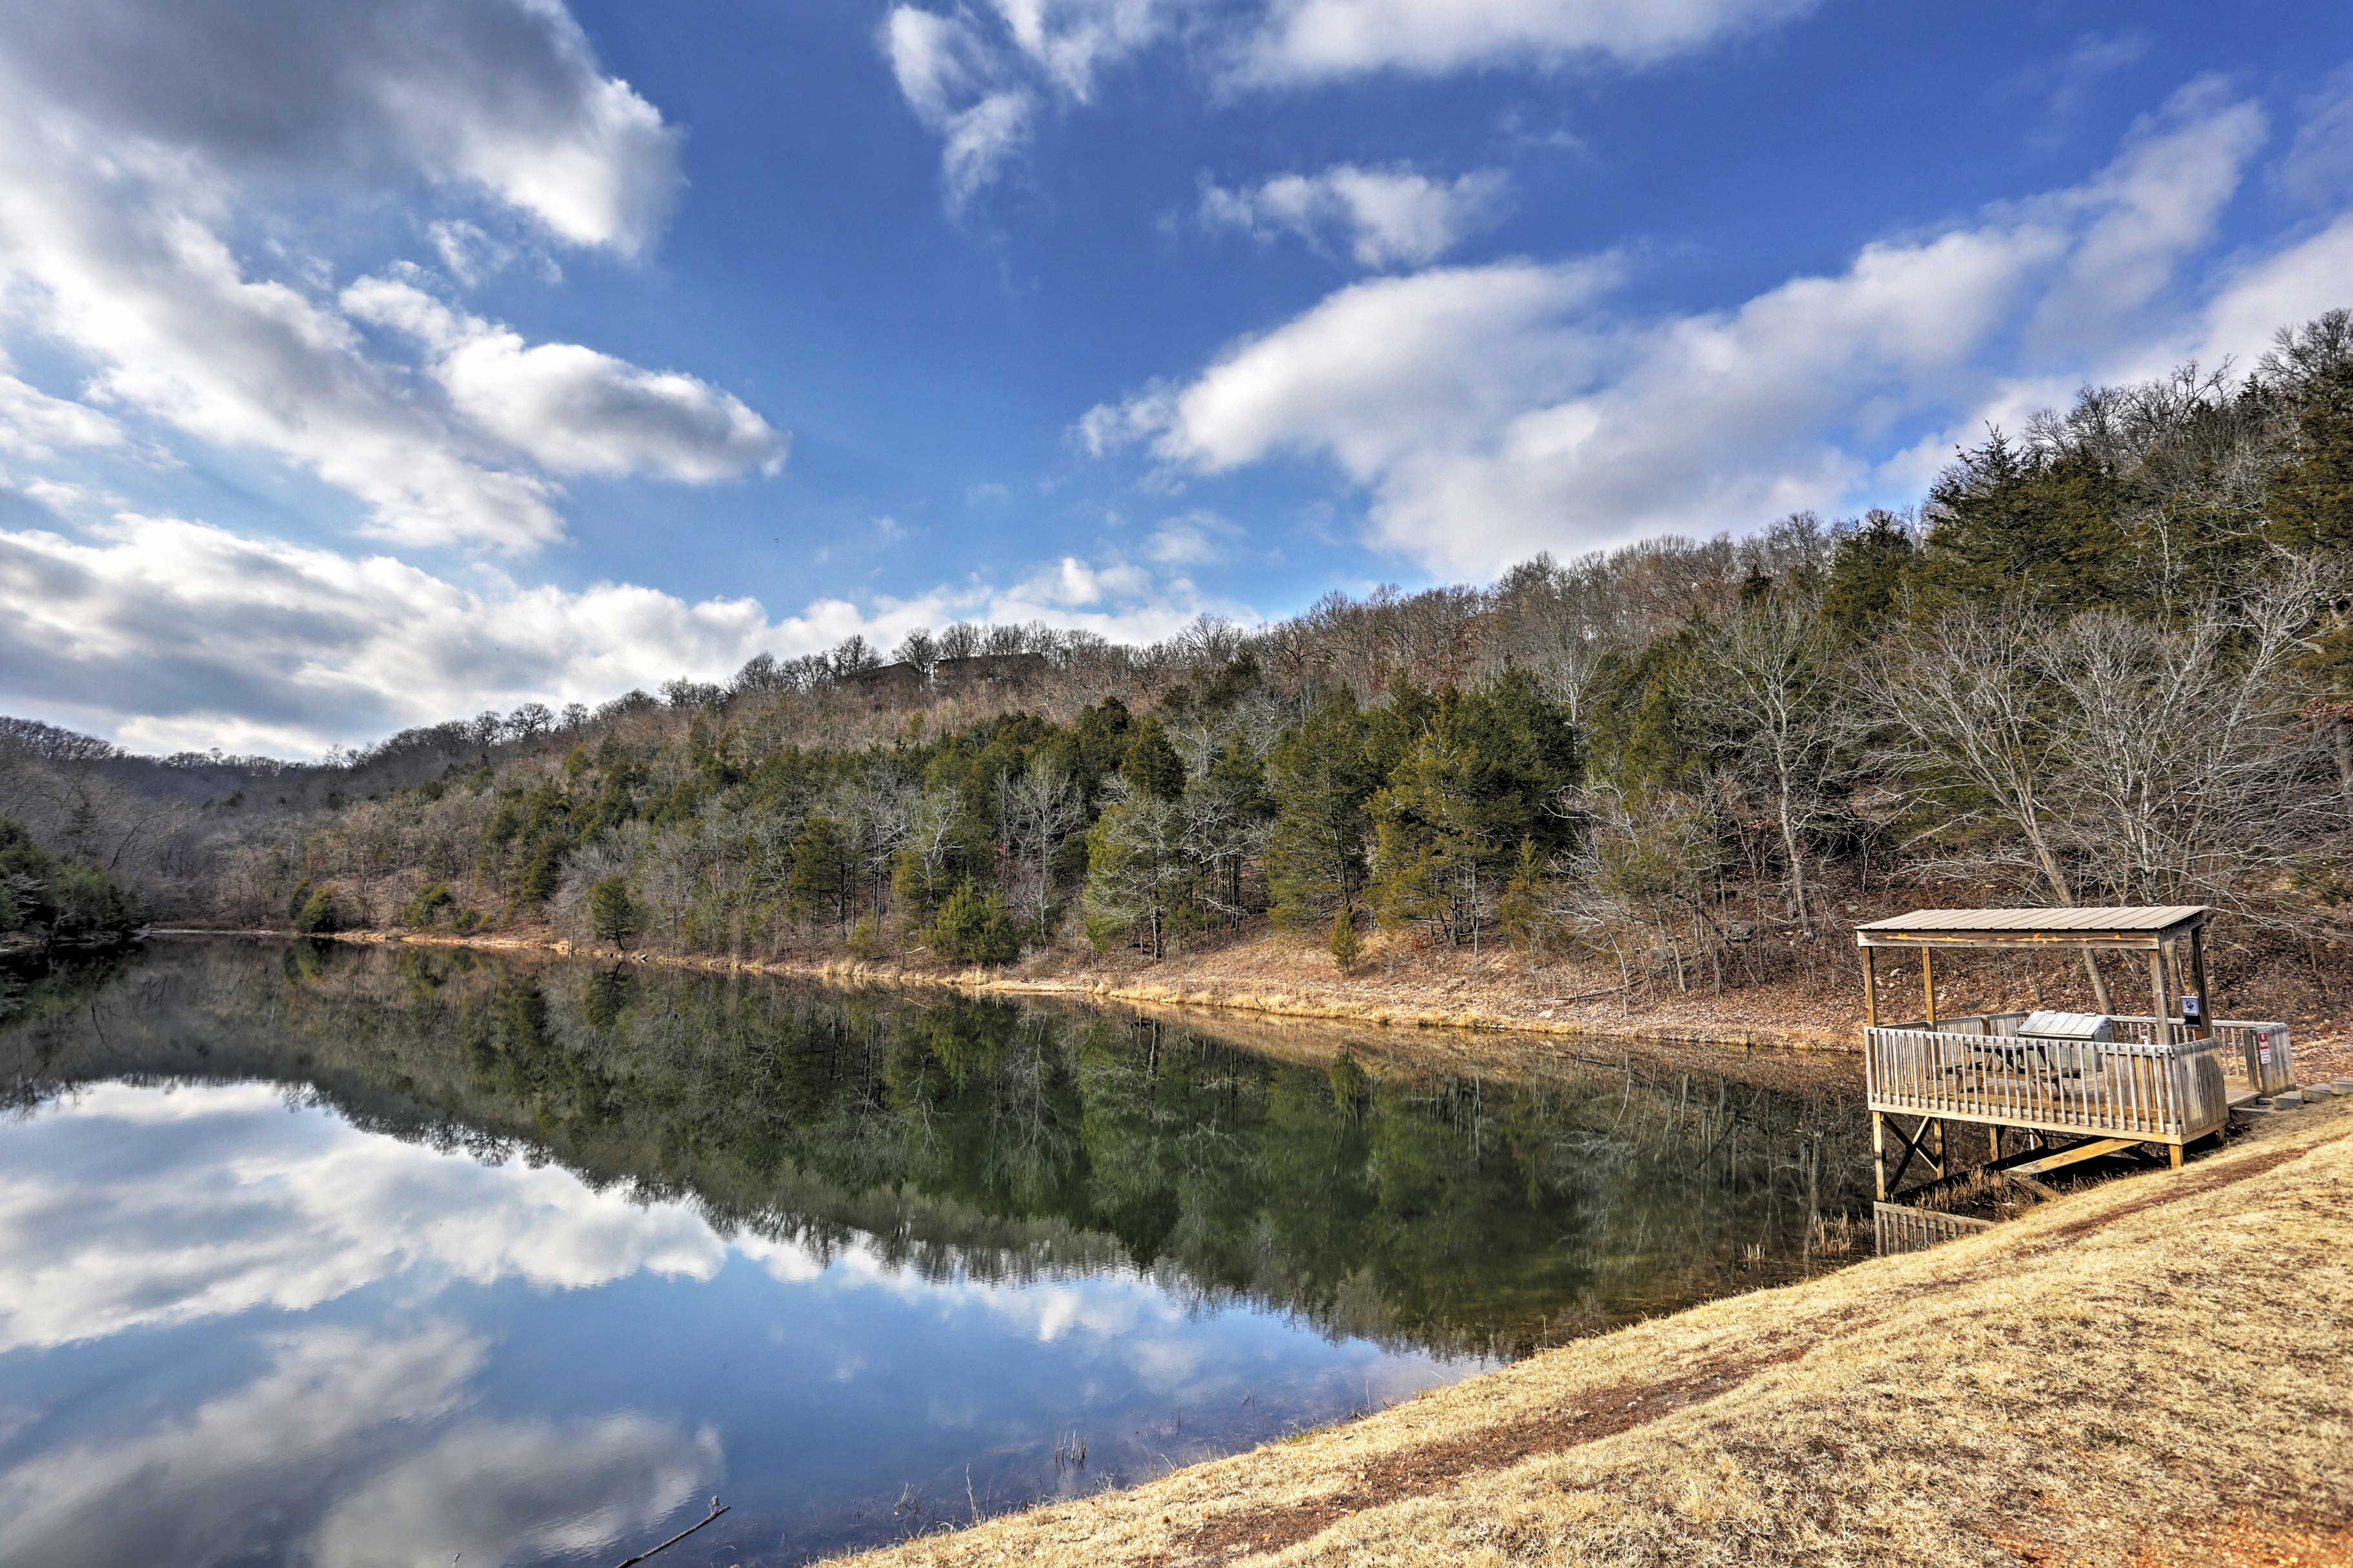 Spend the day fishing the 5-acre catch and release lake!